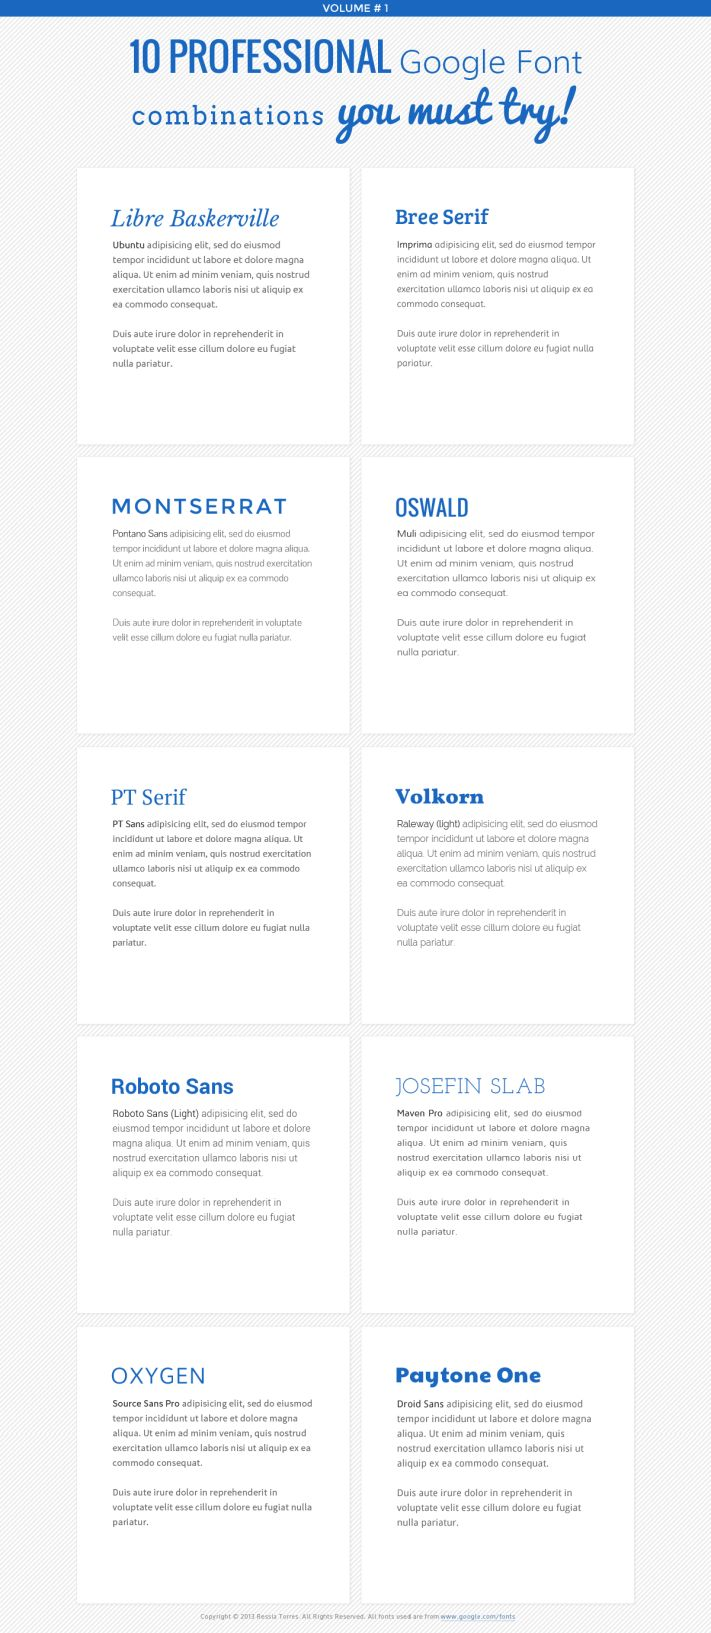 Best Google Font Combinations